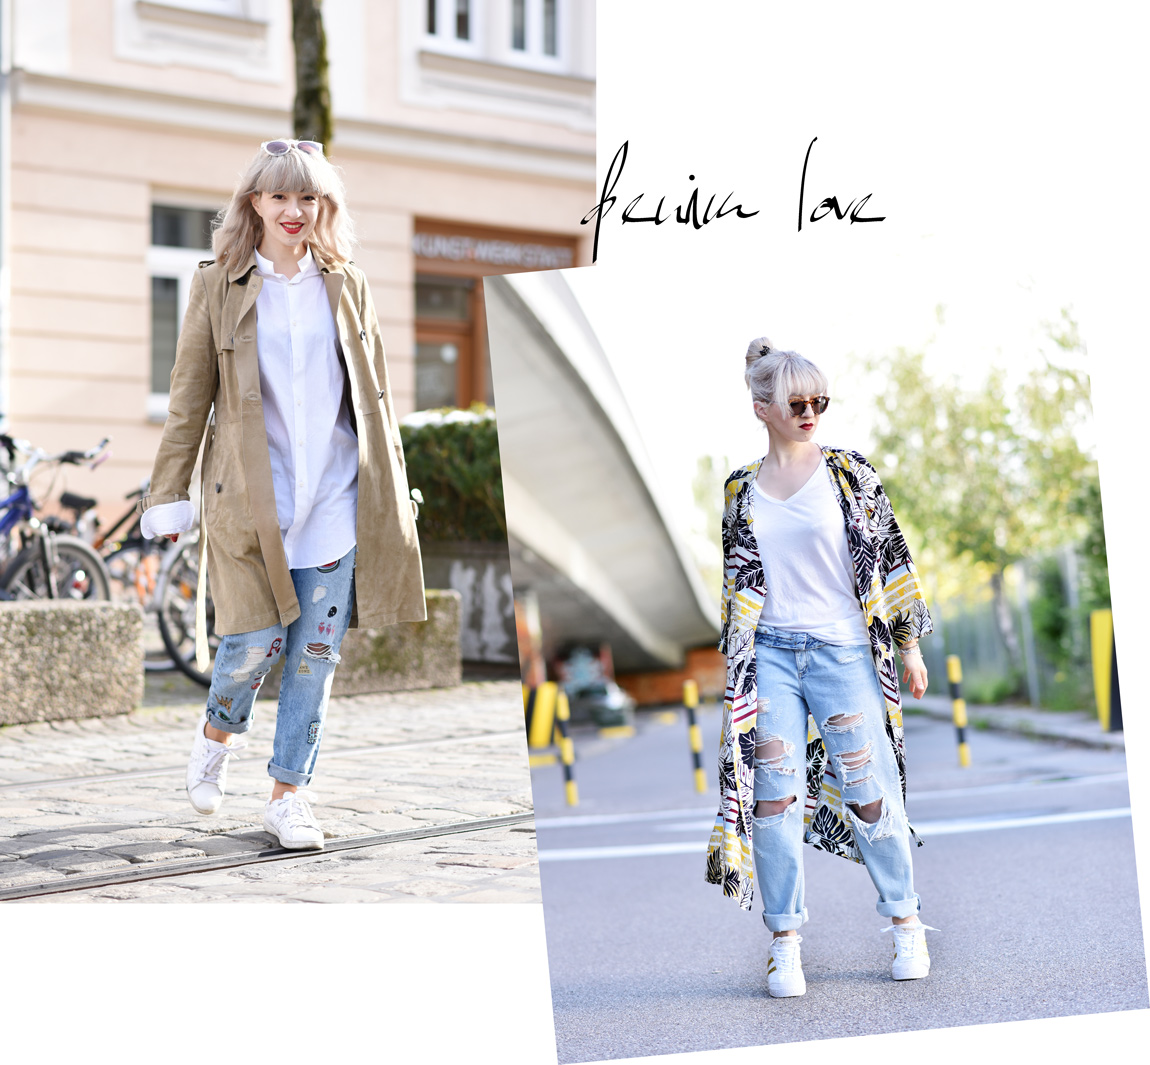 jahresrückblick, blogger, outfit, streetstyle, muenchen, ootd, modeblogger, fashionblogger